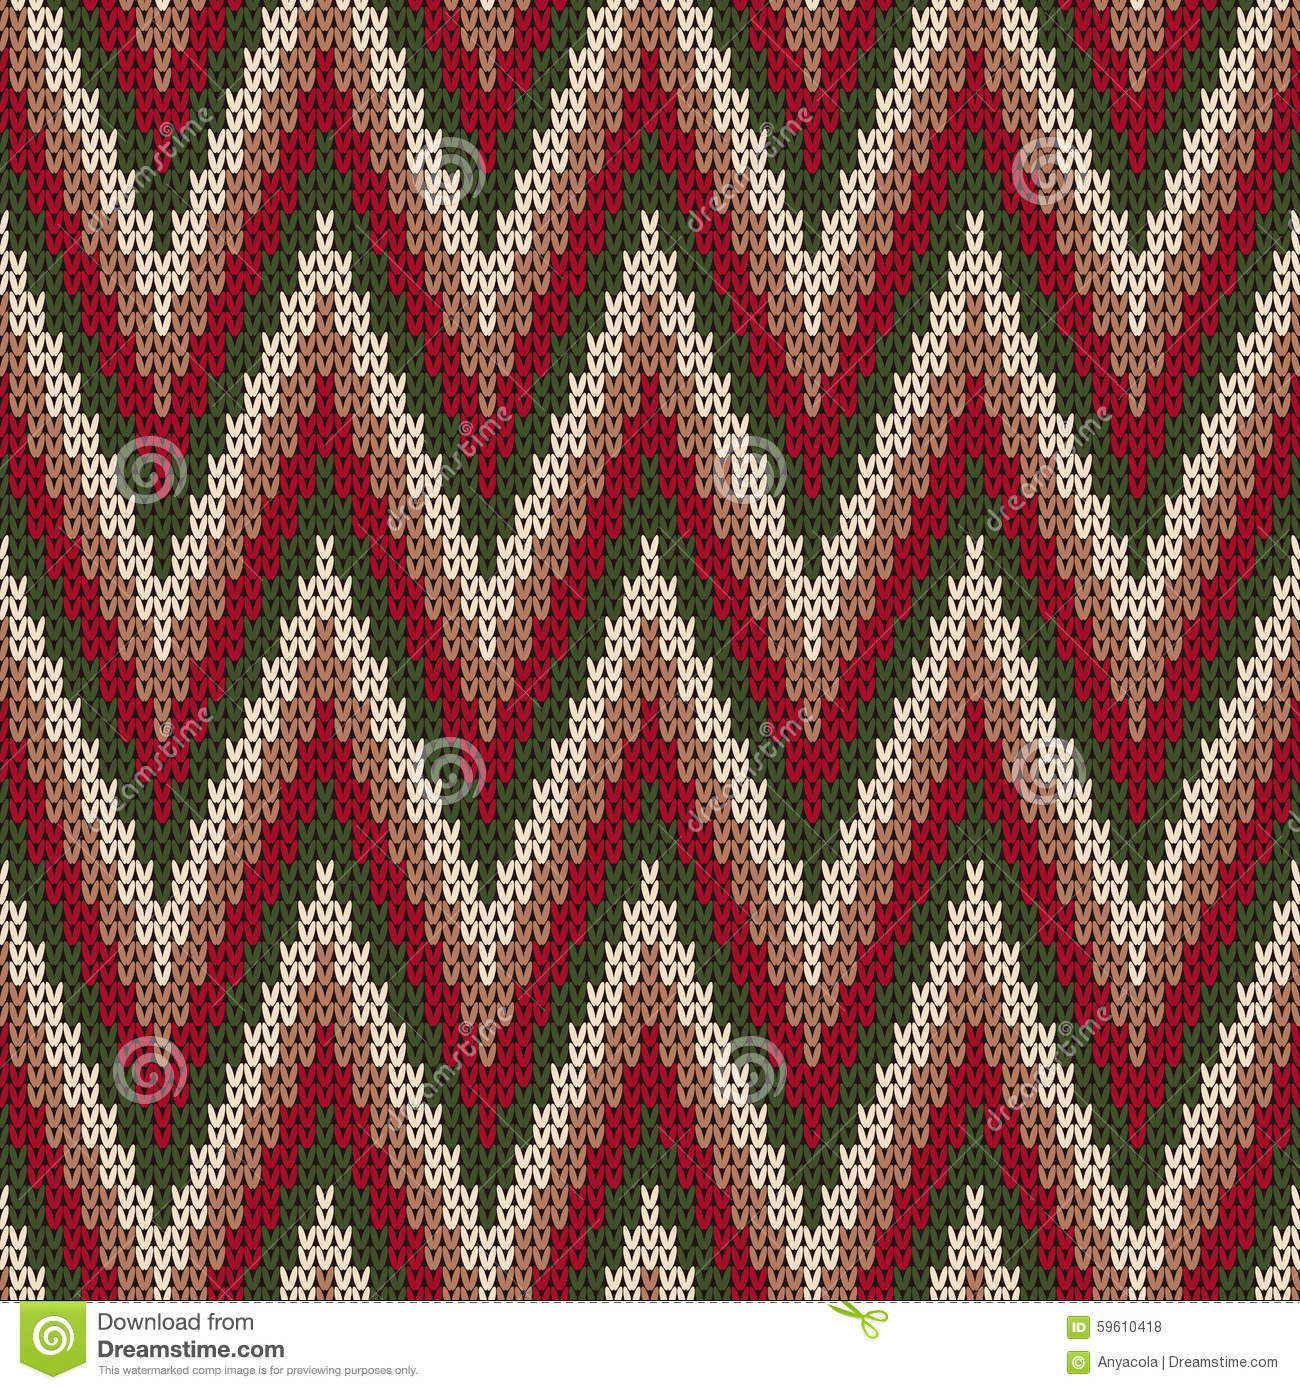 Free Baby Knitting Patterns For Blankets : Traditional Fair Isle Pattern. Seamless Knitting Ornament Stock Vector - Imag...